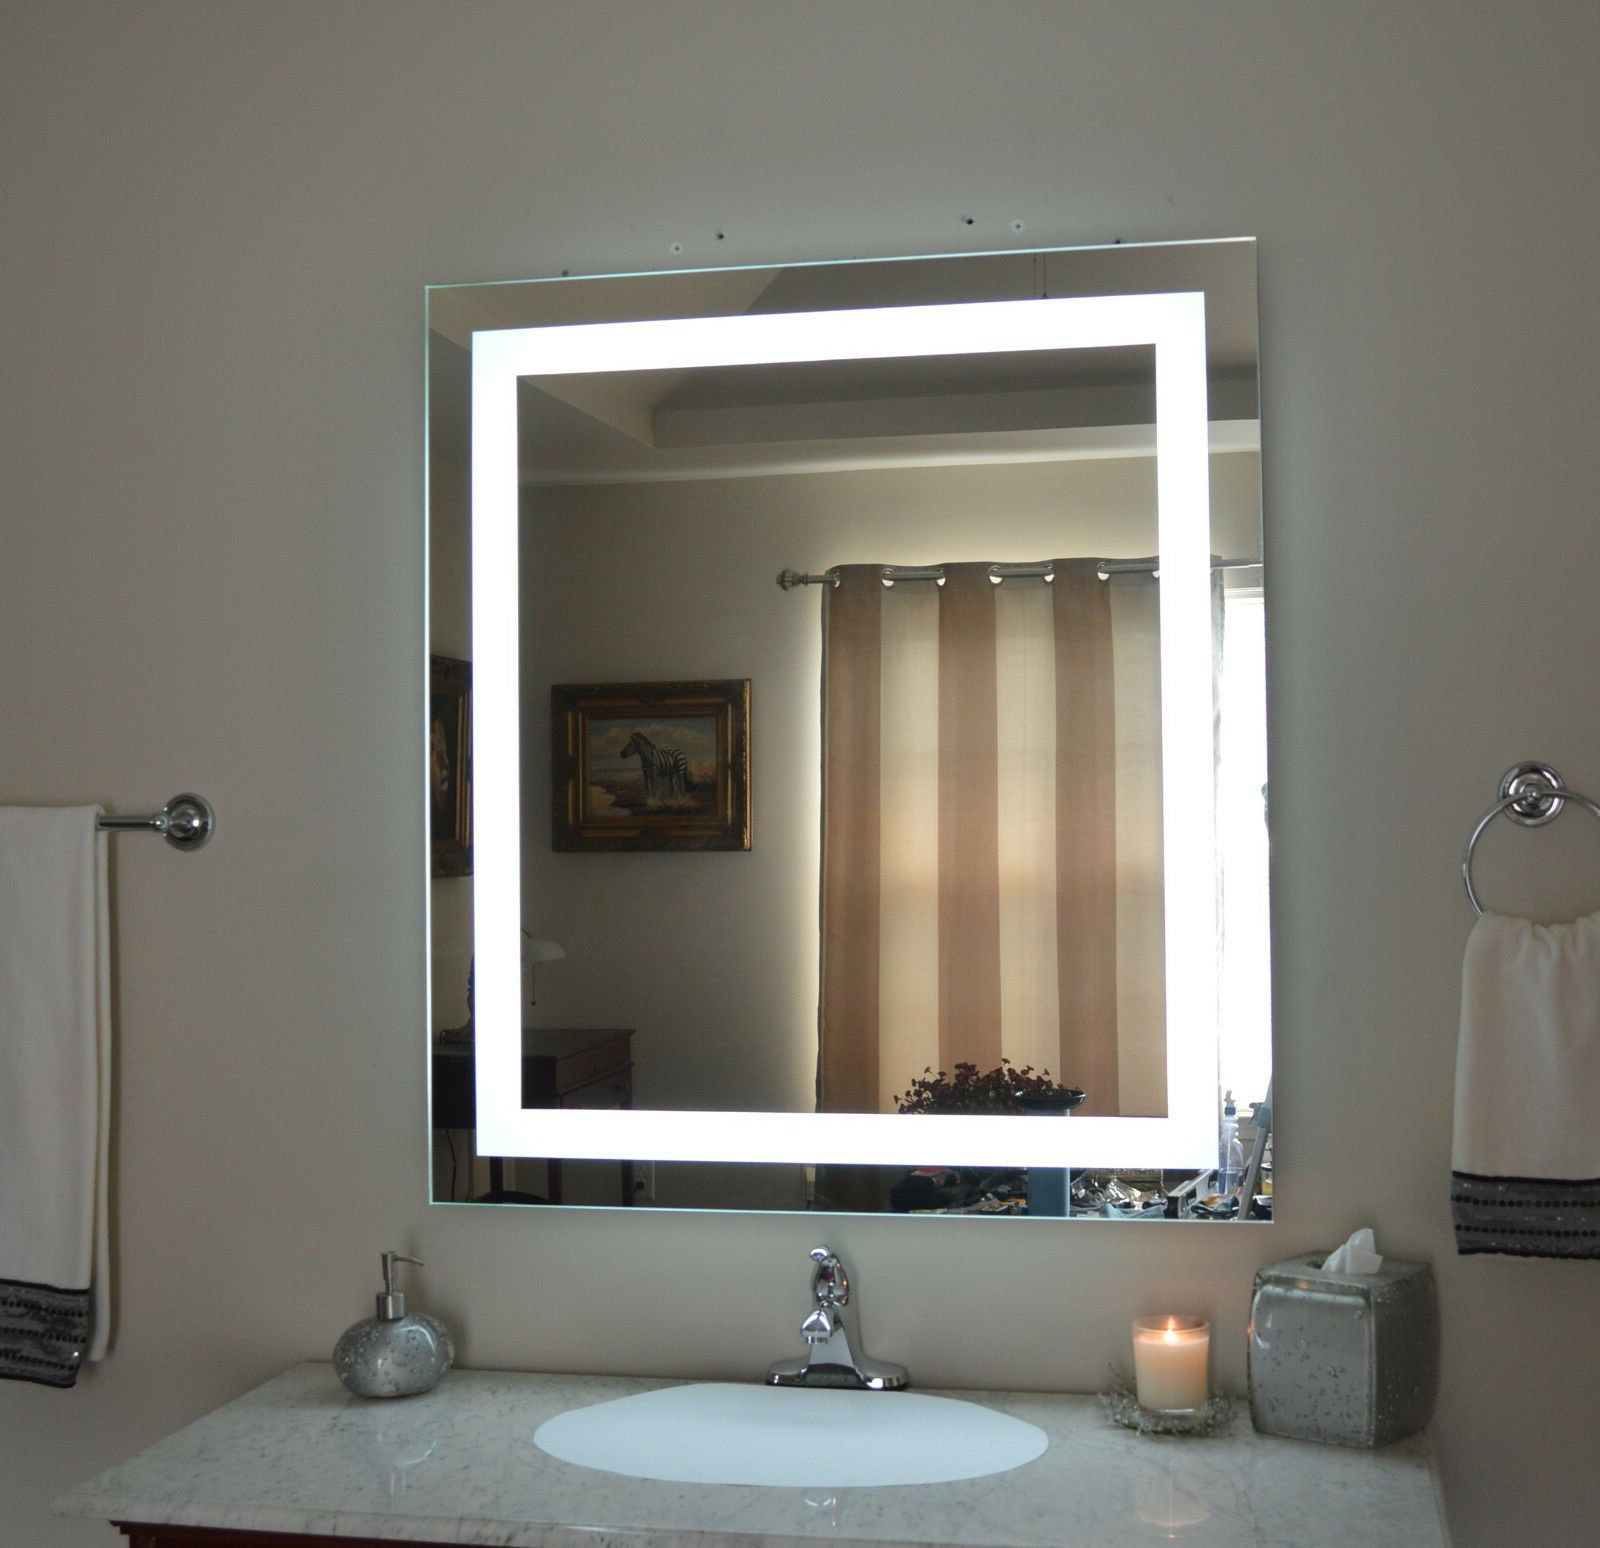 Light Up Wall Mirror Led Grow Light Depot Light Up Wall Mirror Bathroom Inside Popular Light Up Wall Mirrors (View 5 of 20)